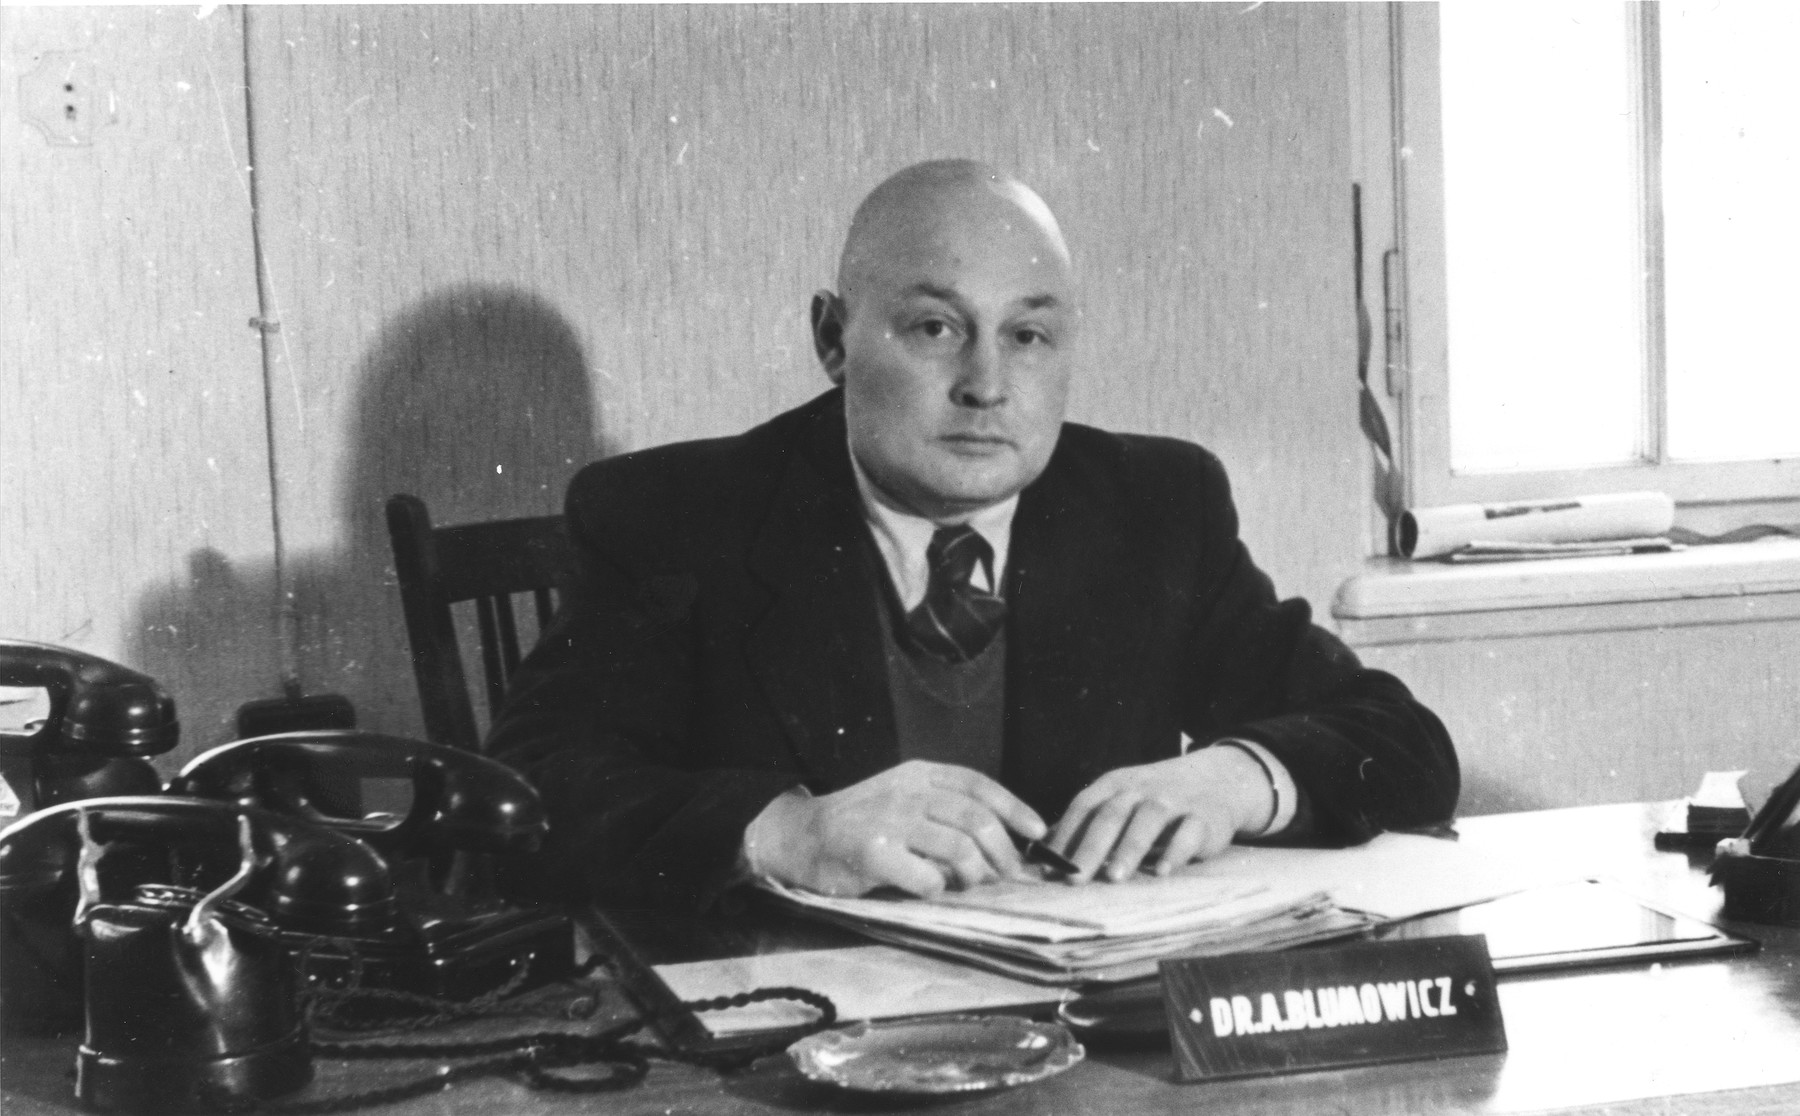 Portrait of Dr. Abrasha Blumowicz, a member of the executive of the Central Committee of Liberated Jews in the US Zone of Germany, seated at his desk.